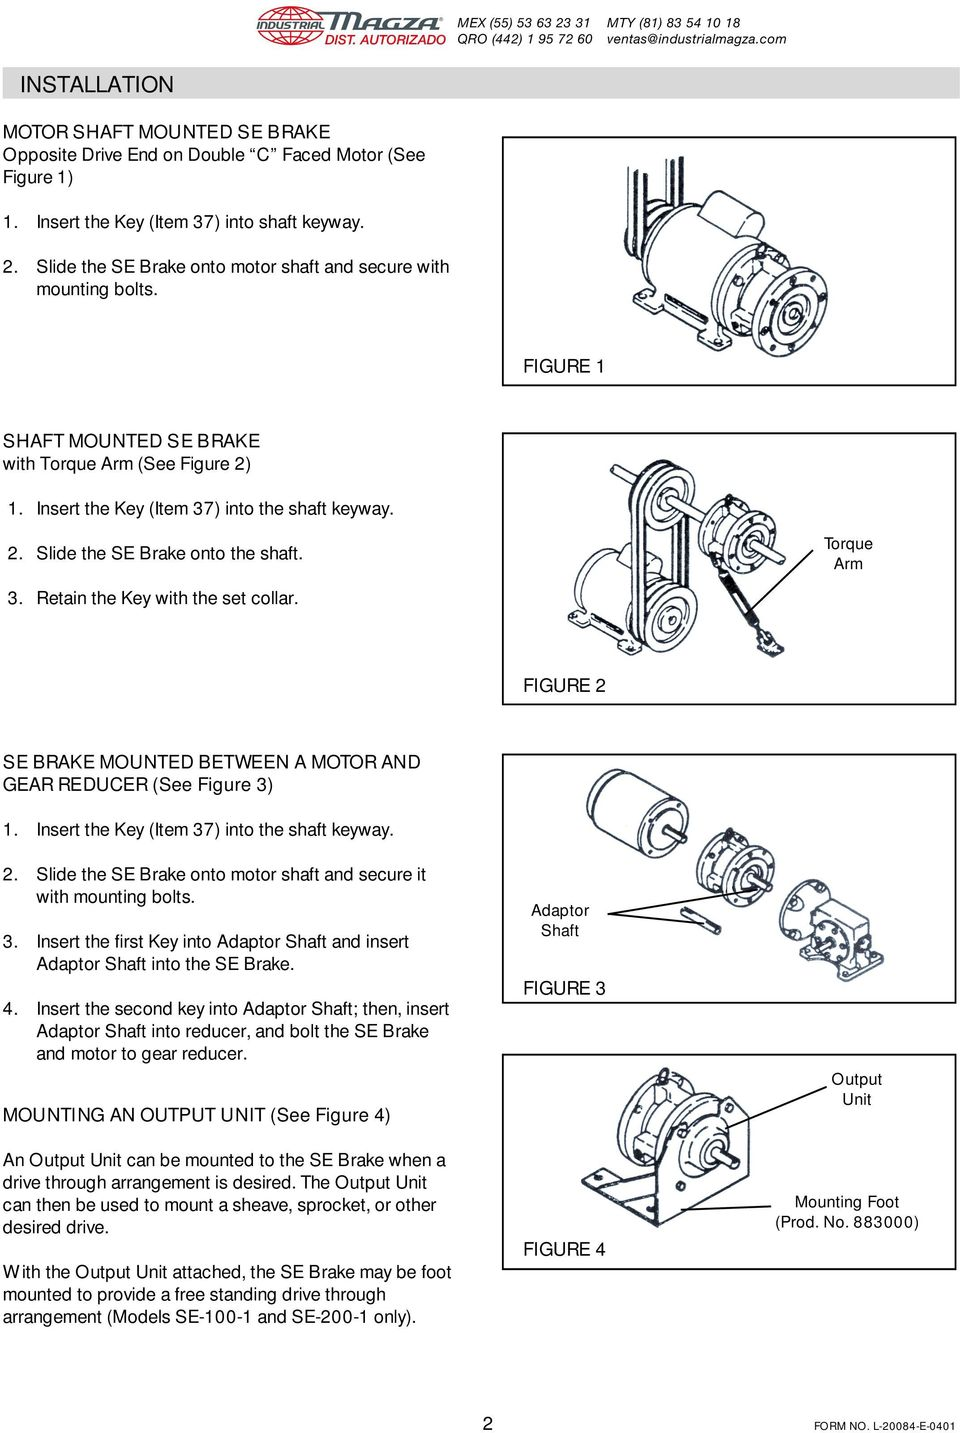 3. Retain the Key with the set collar. Torque Arm FIGURE 2 SE BRAKE MOUNTED BETWEEN A MOTOR AND GEAR REDUCER (See Figure 3). Insert the Key (Item 37) into the shaft keyway. 2. Slide the SE Brake onto motor shaft and secure it with mounting bolts.